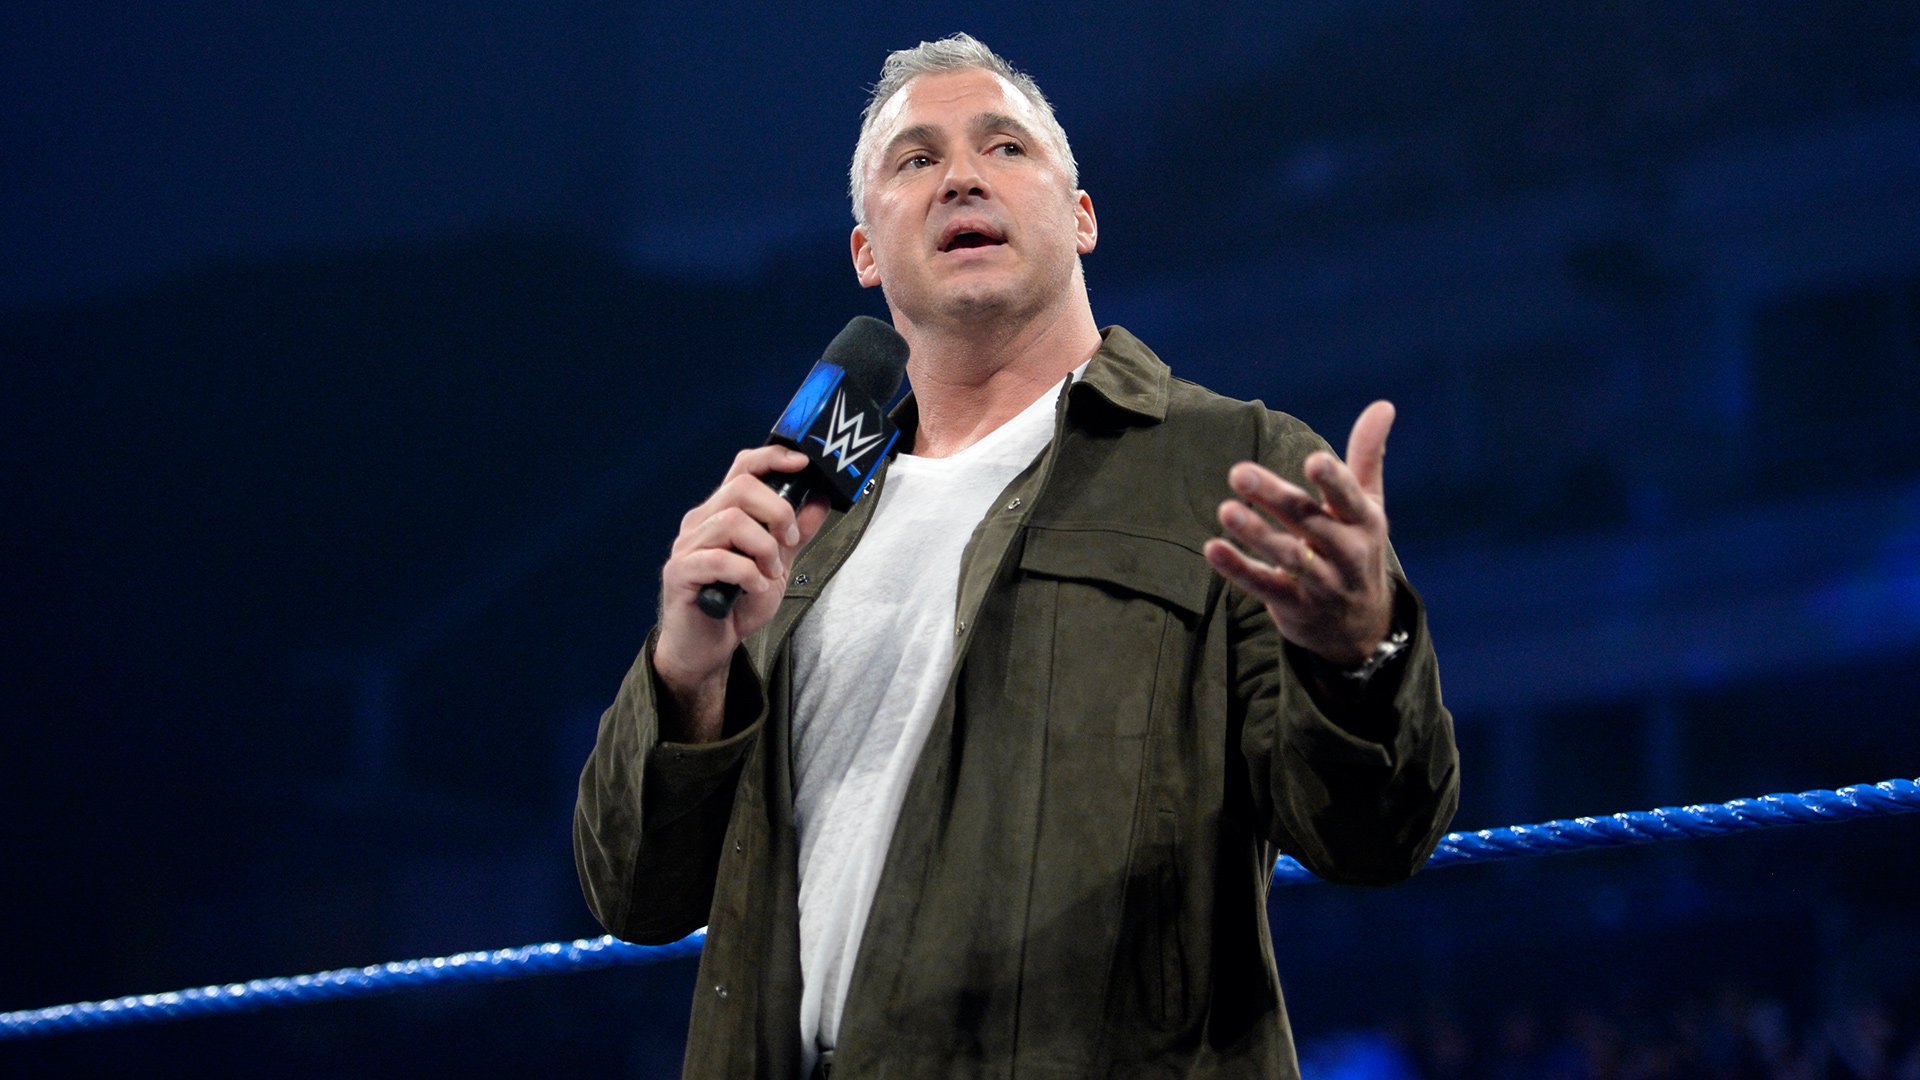 SmackDown LIVE Commissioner Shane McMahon prepares to preside over the Six-Woman Tag Team Match Contract Signing for WWE Backlash this Sunday.